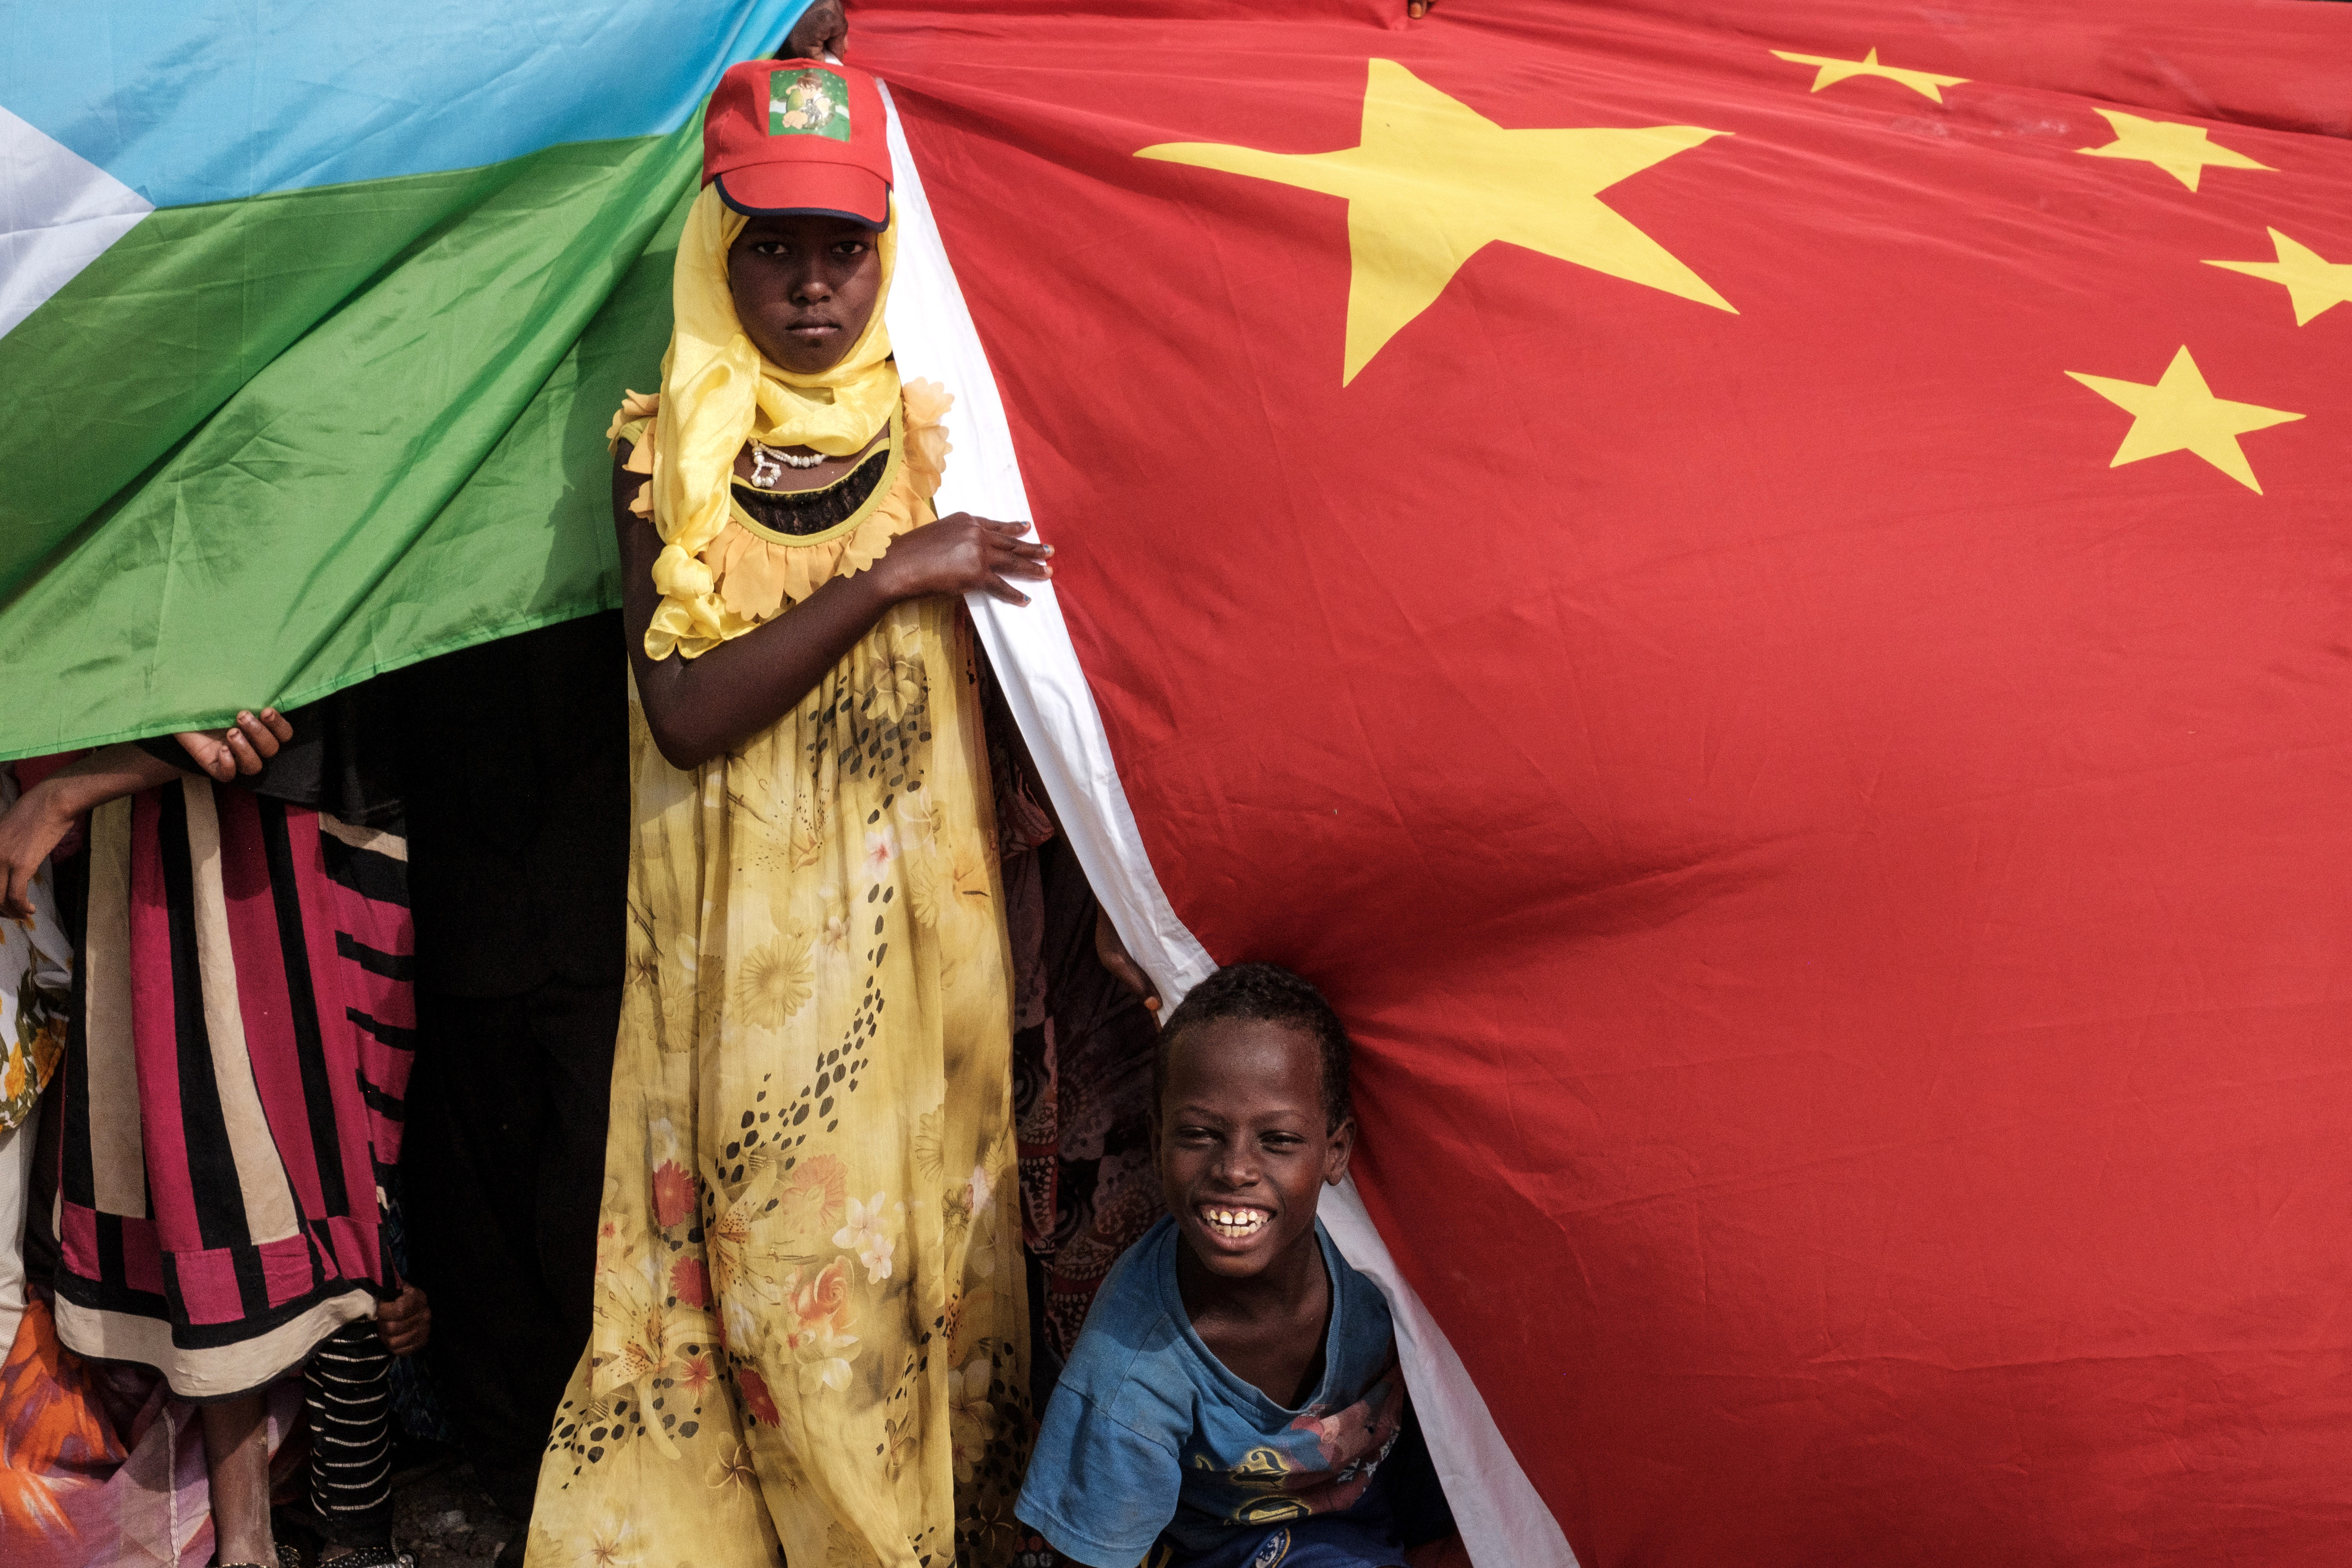 People hold Chinese and Djiboutian national flags as they wait for the arrival of Djibouti's President Ismail Omar Guellehas before the launching ceremony of new 1,000-unit housing construction project in Djibouti, July 4, 2018. The project is financ...